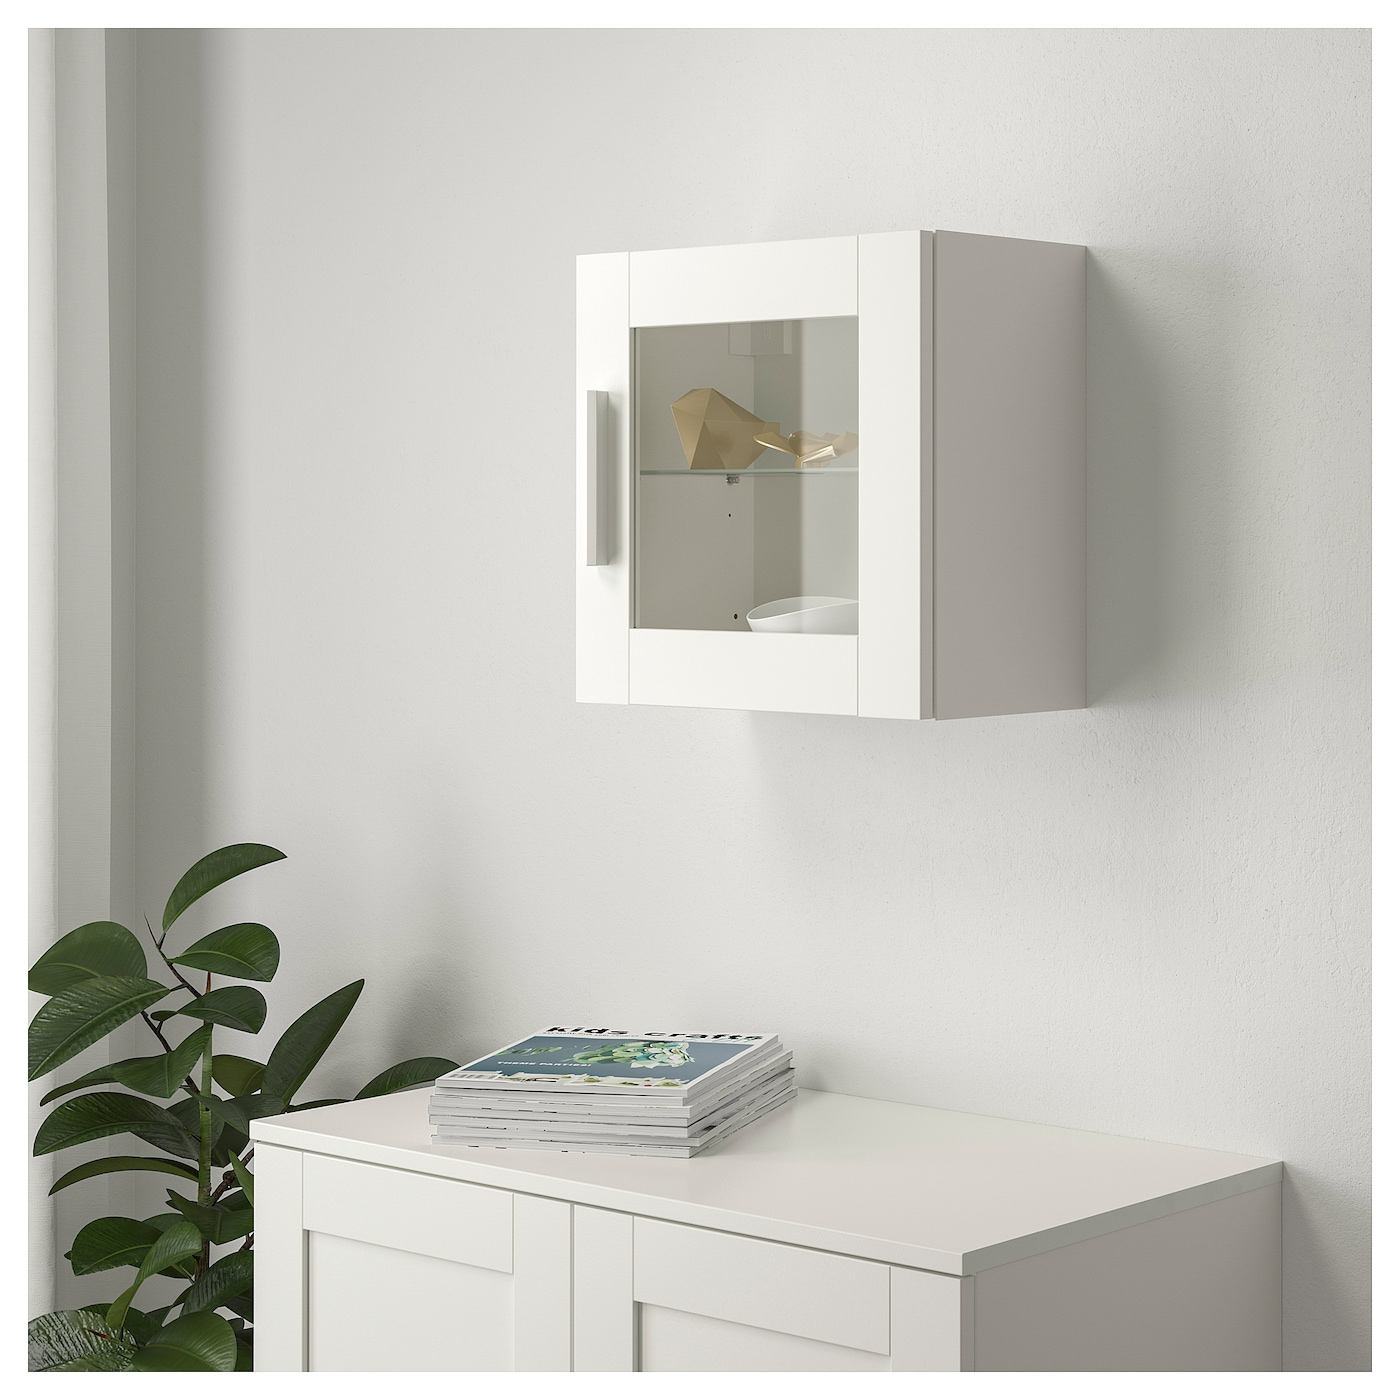 Brimnes wall cabinet with glass door white 39x39 cm ikea for Ikea glass door wall cabinet